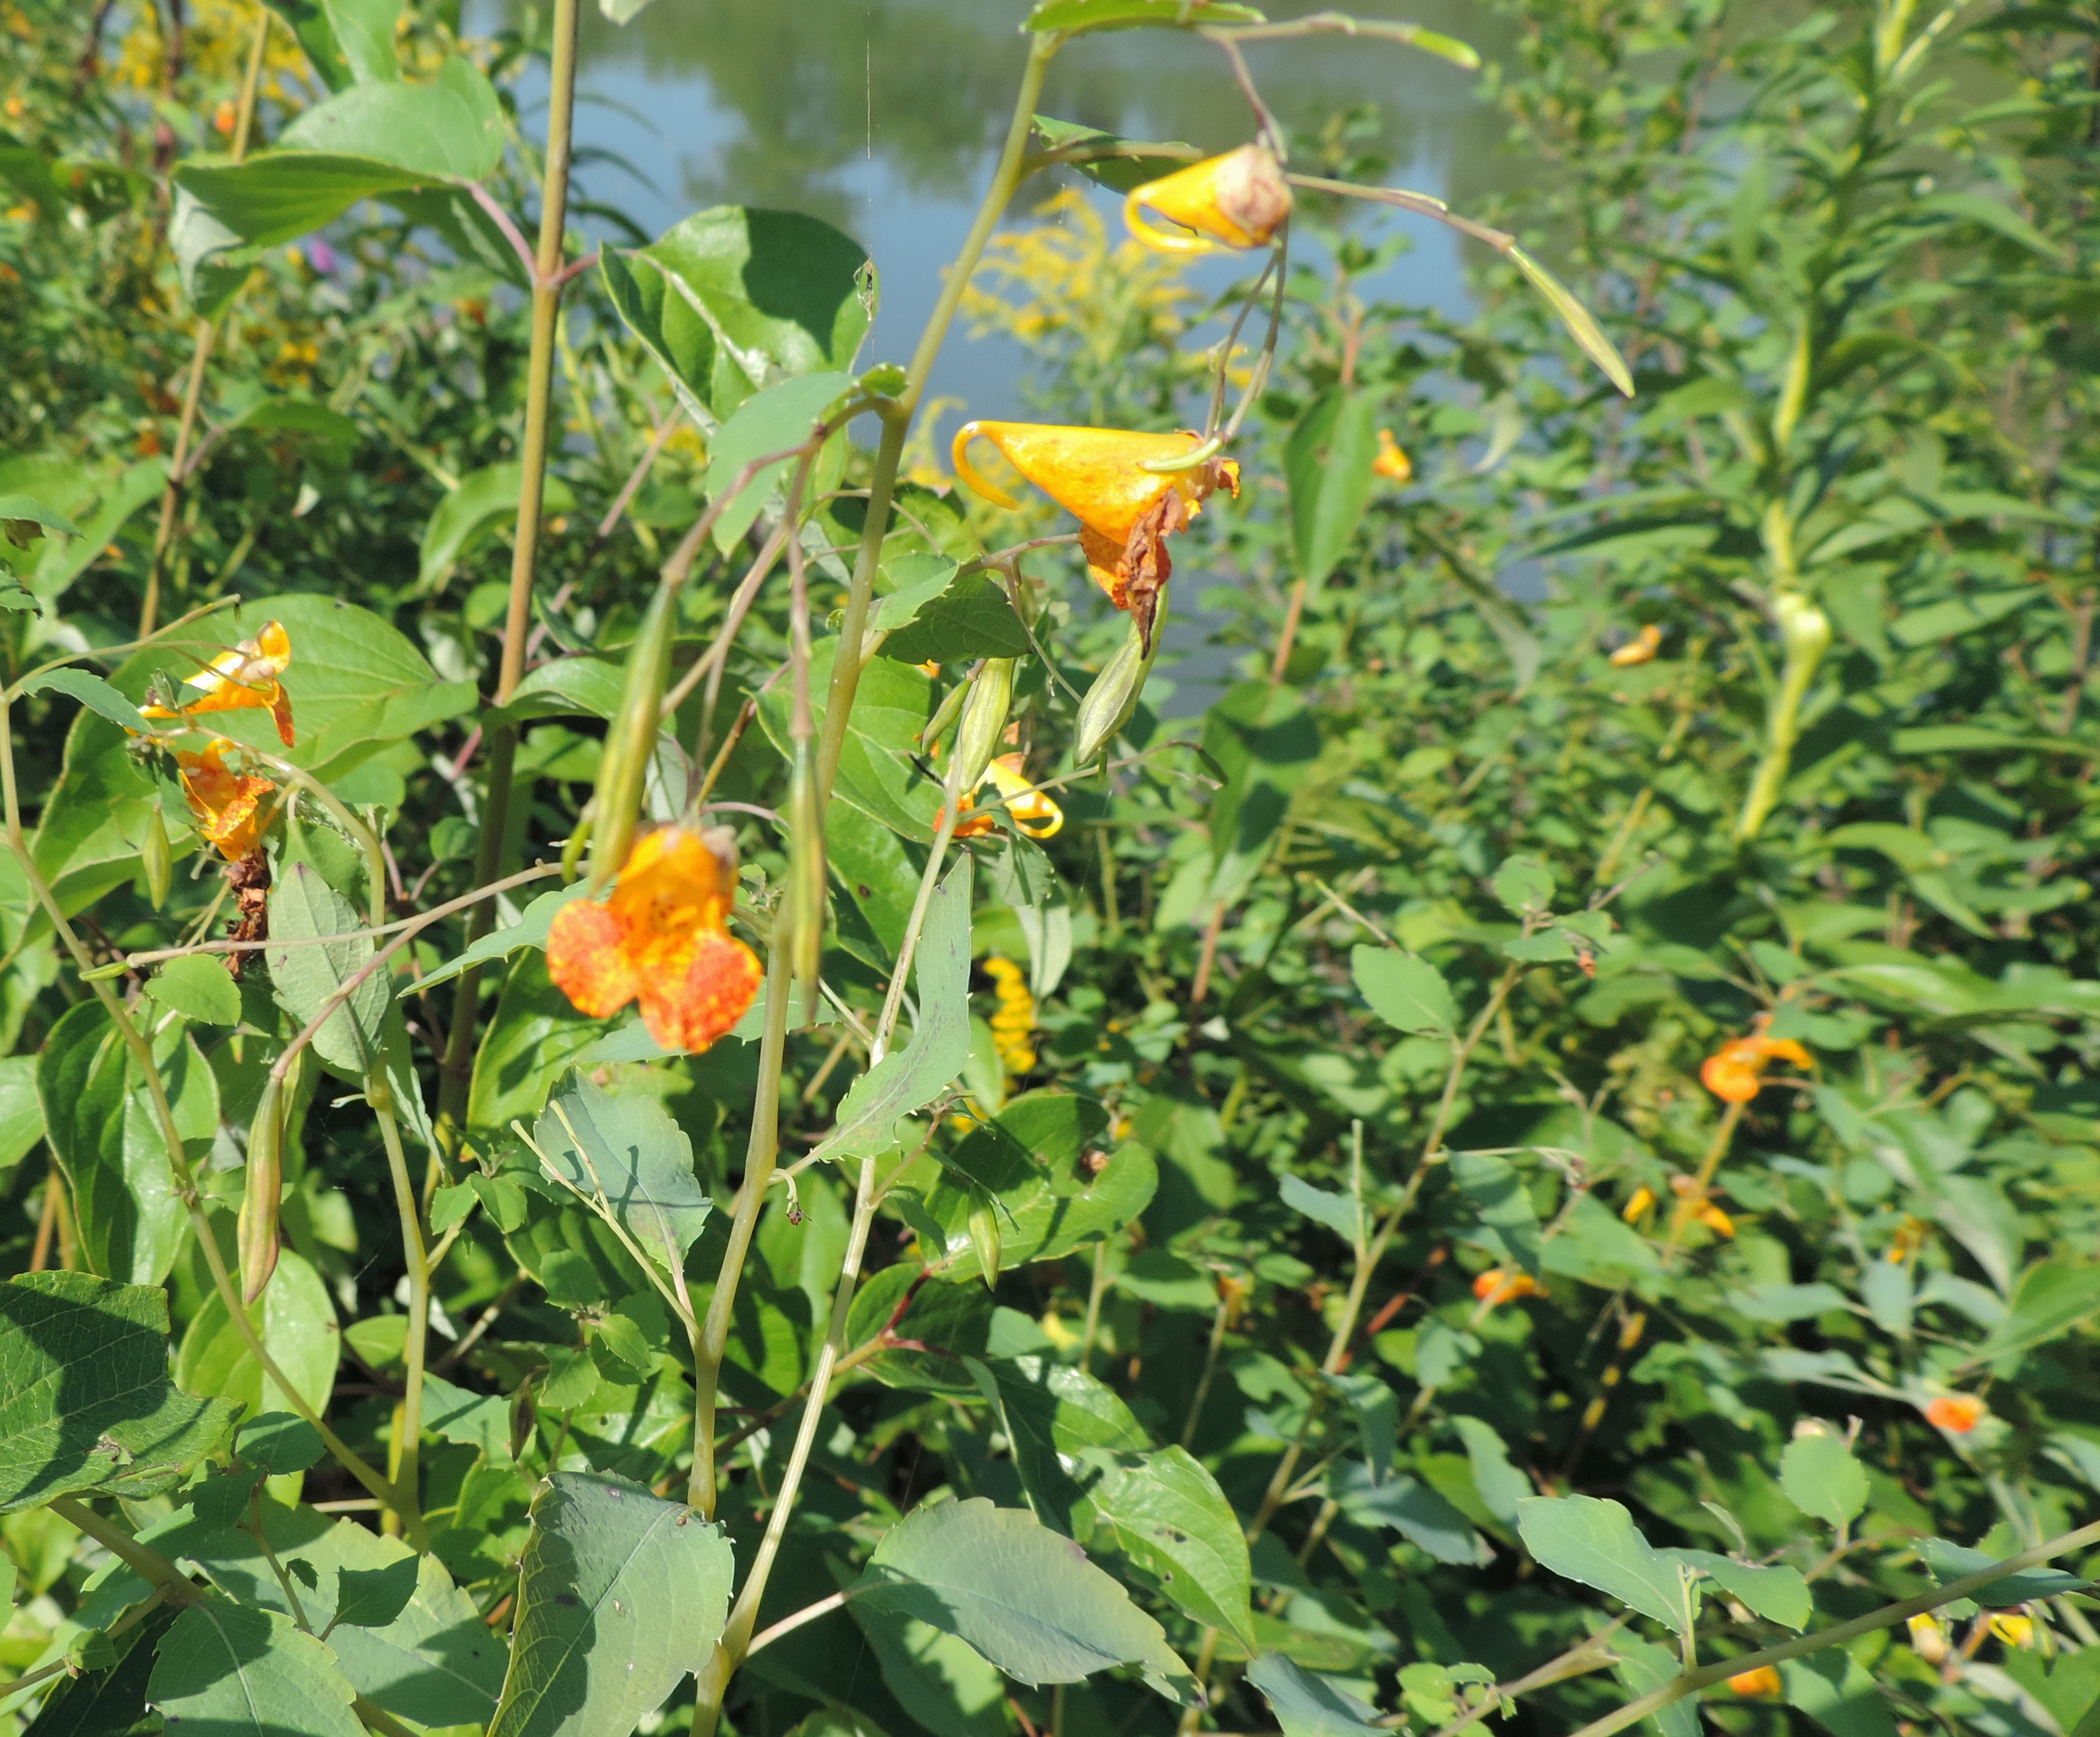 A cluster of spotted Jewelweed